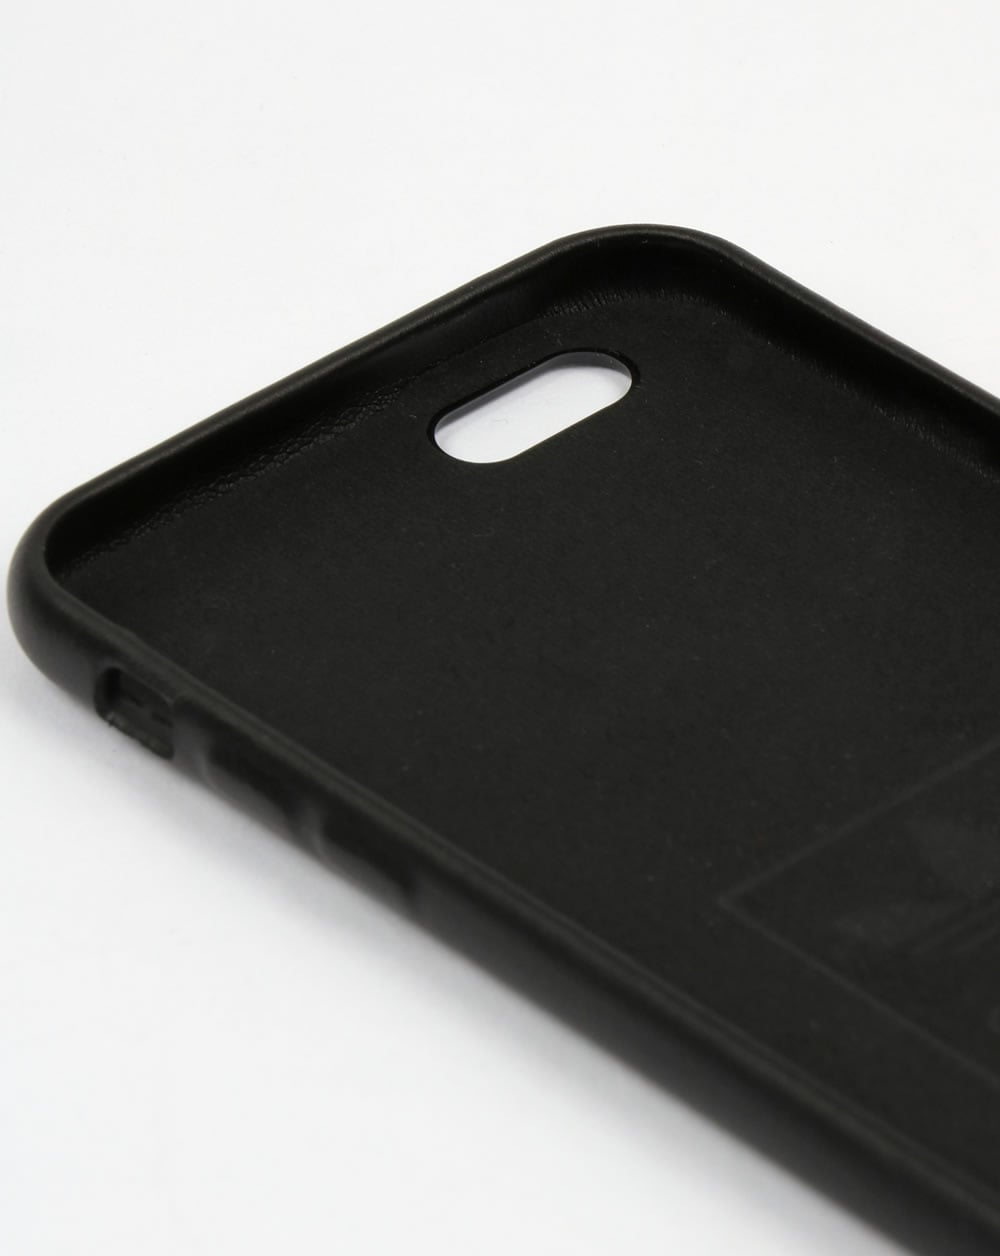 new style 10e3f 971fc Adidas Originals iPhone 6/6S Slim Case Black